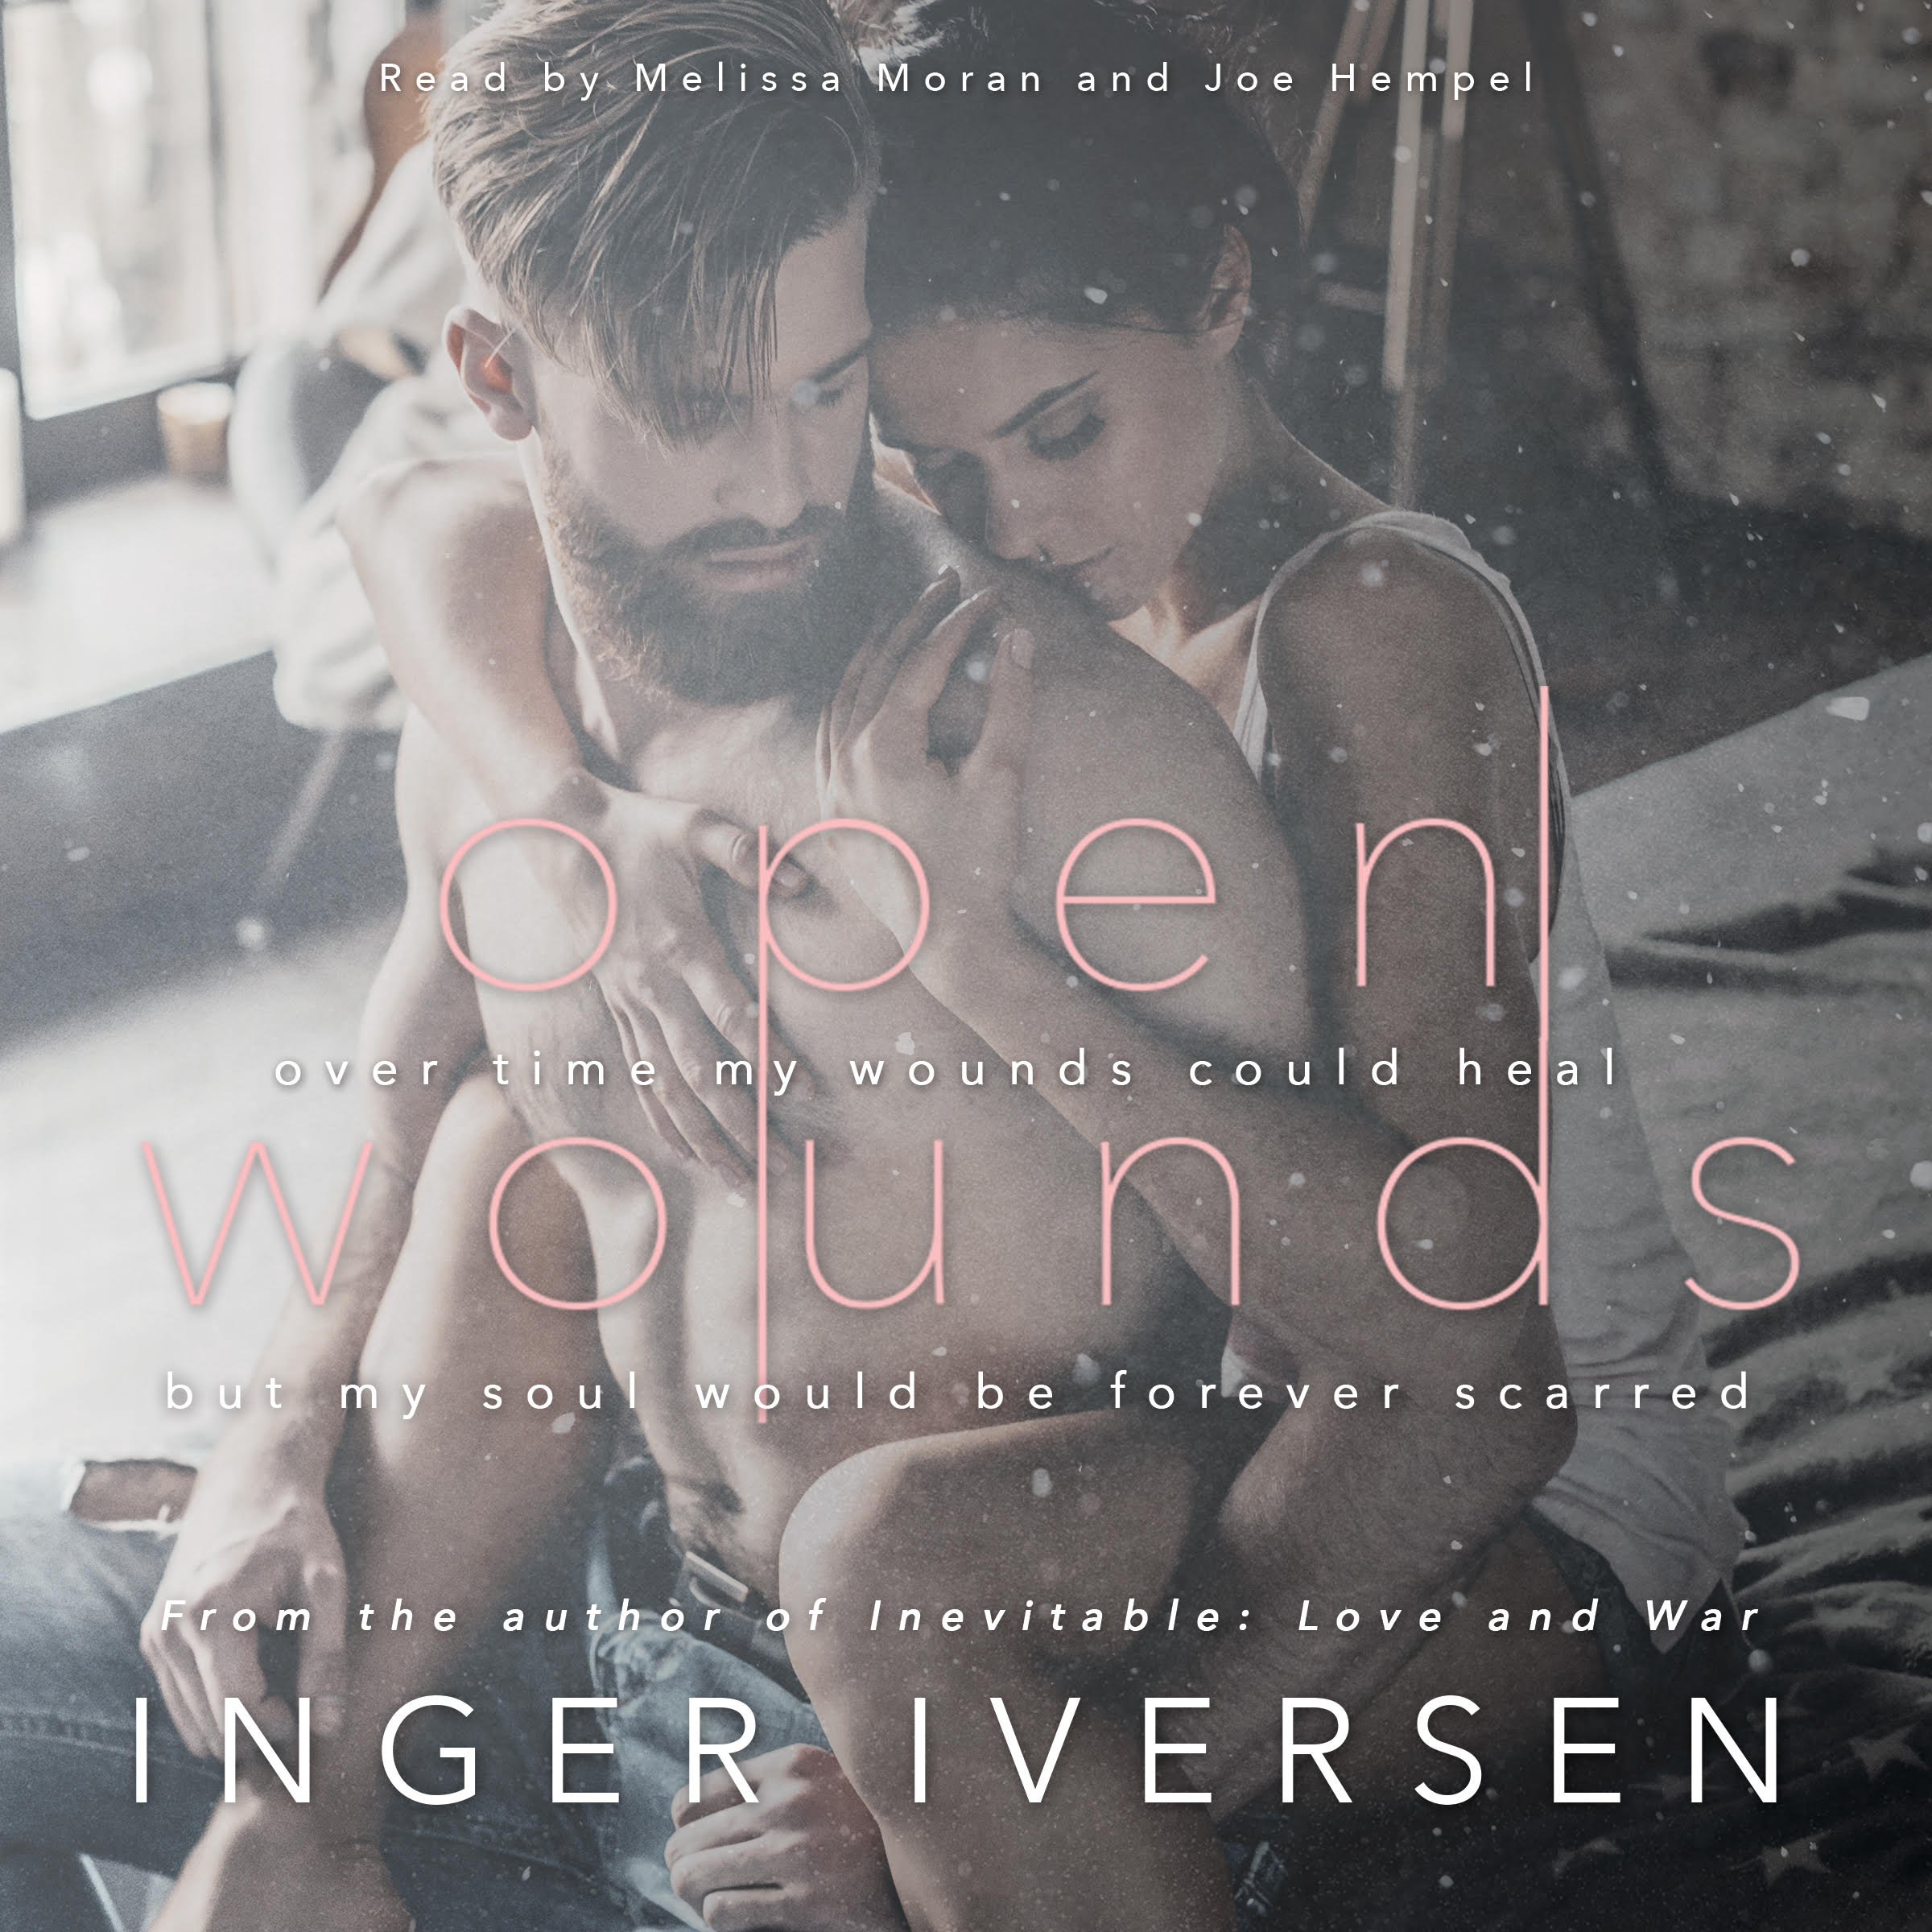 Missing Teal and Trent from Inevitable: Love & War? Check out Open Wounds, the second of many standalones. Open Wounds coming to audio soon!